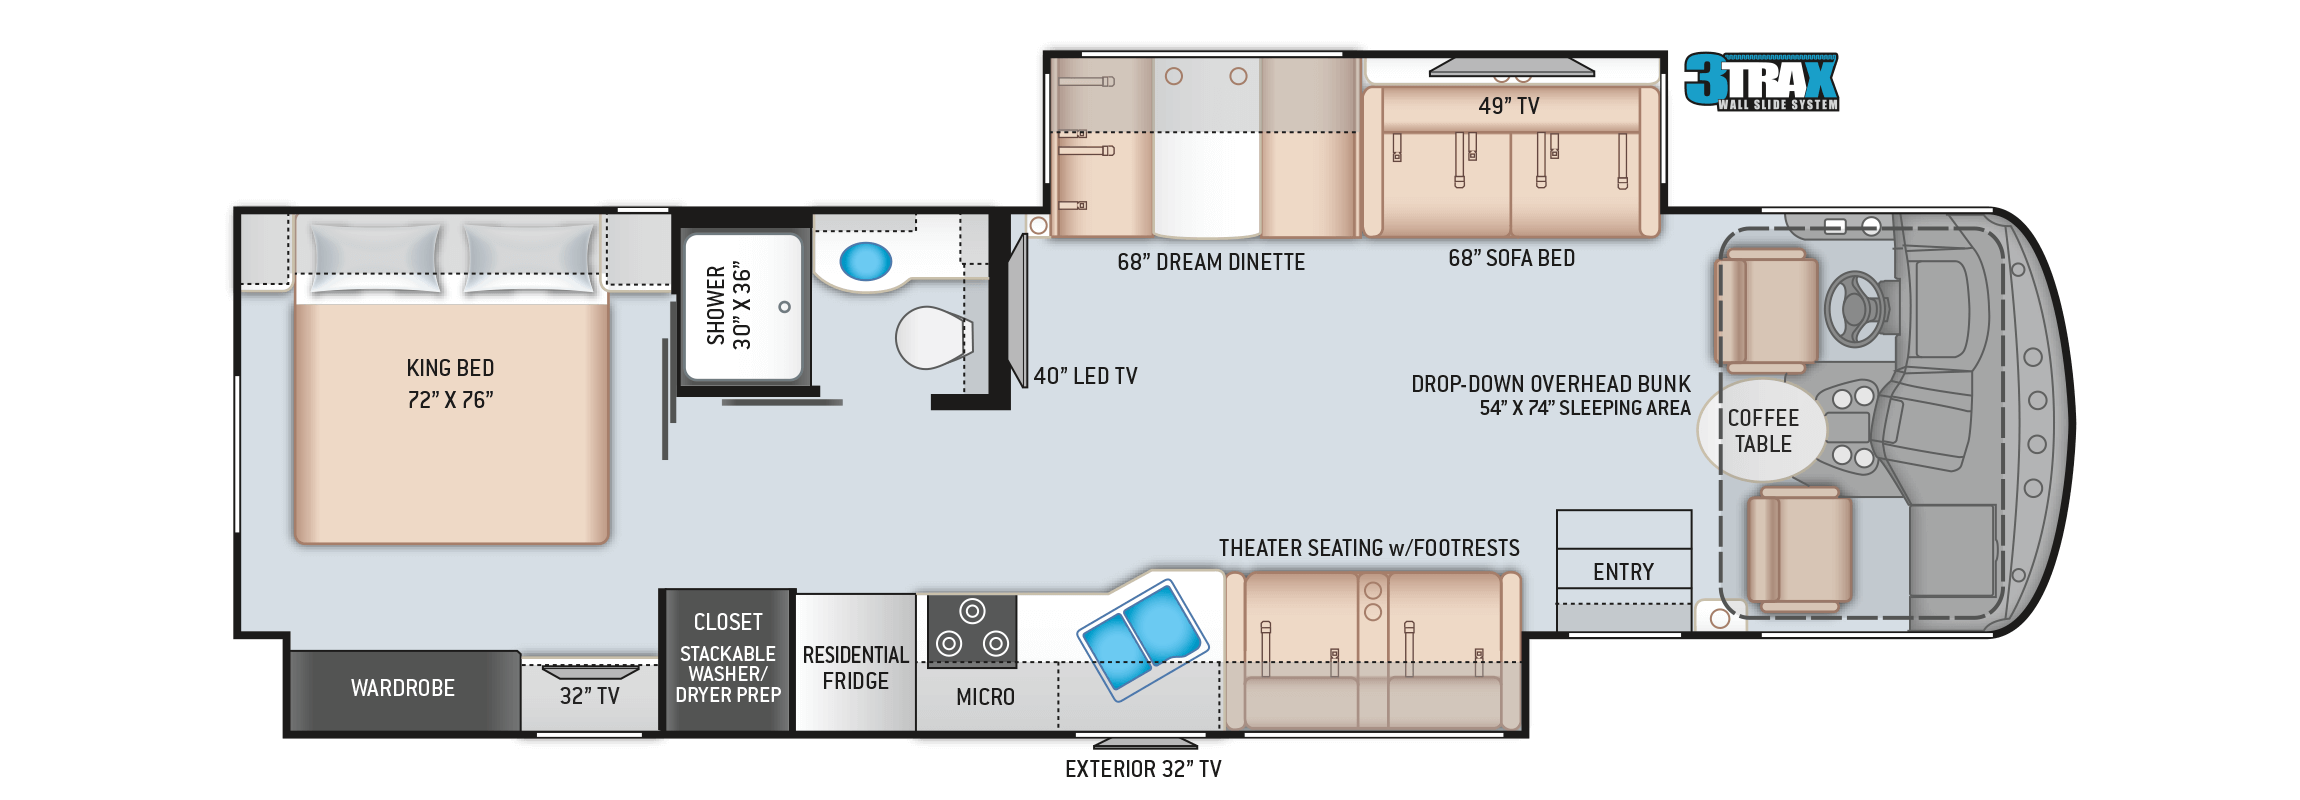 Floorplan of a 34R Windsport RV Rental